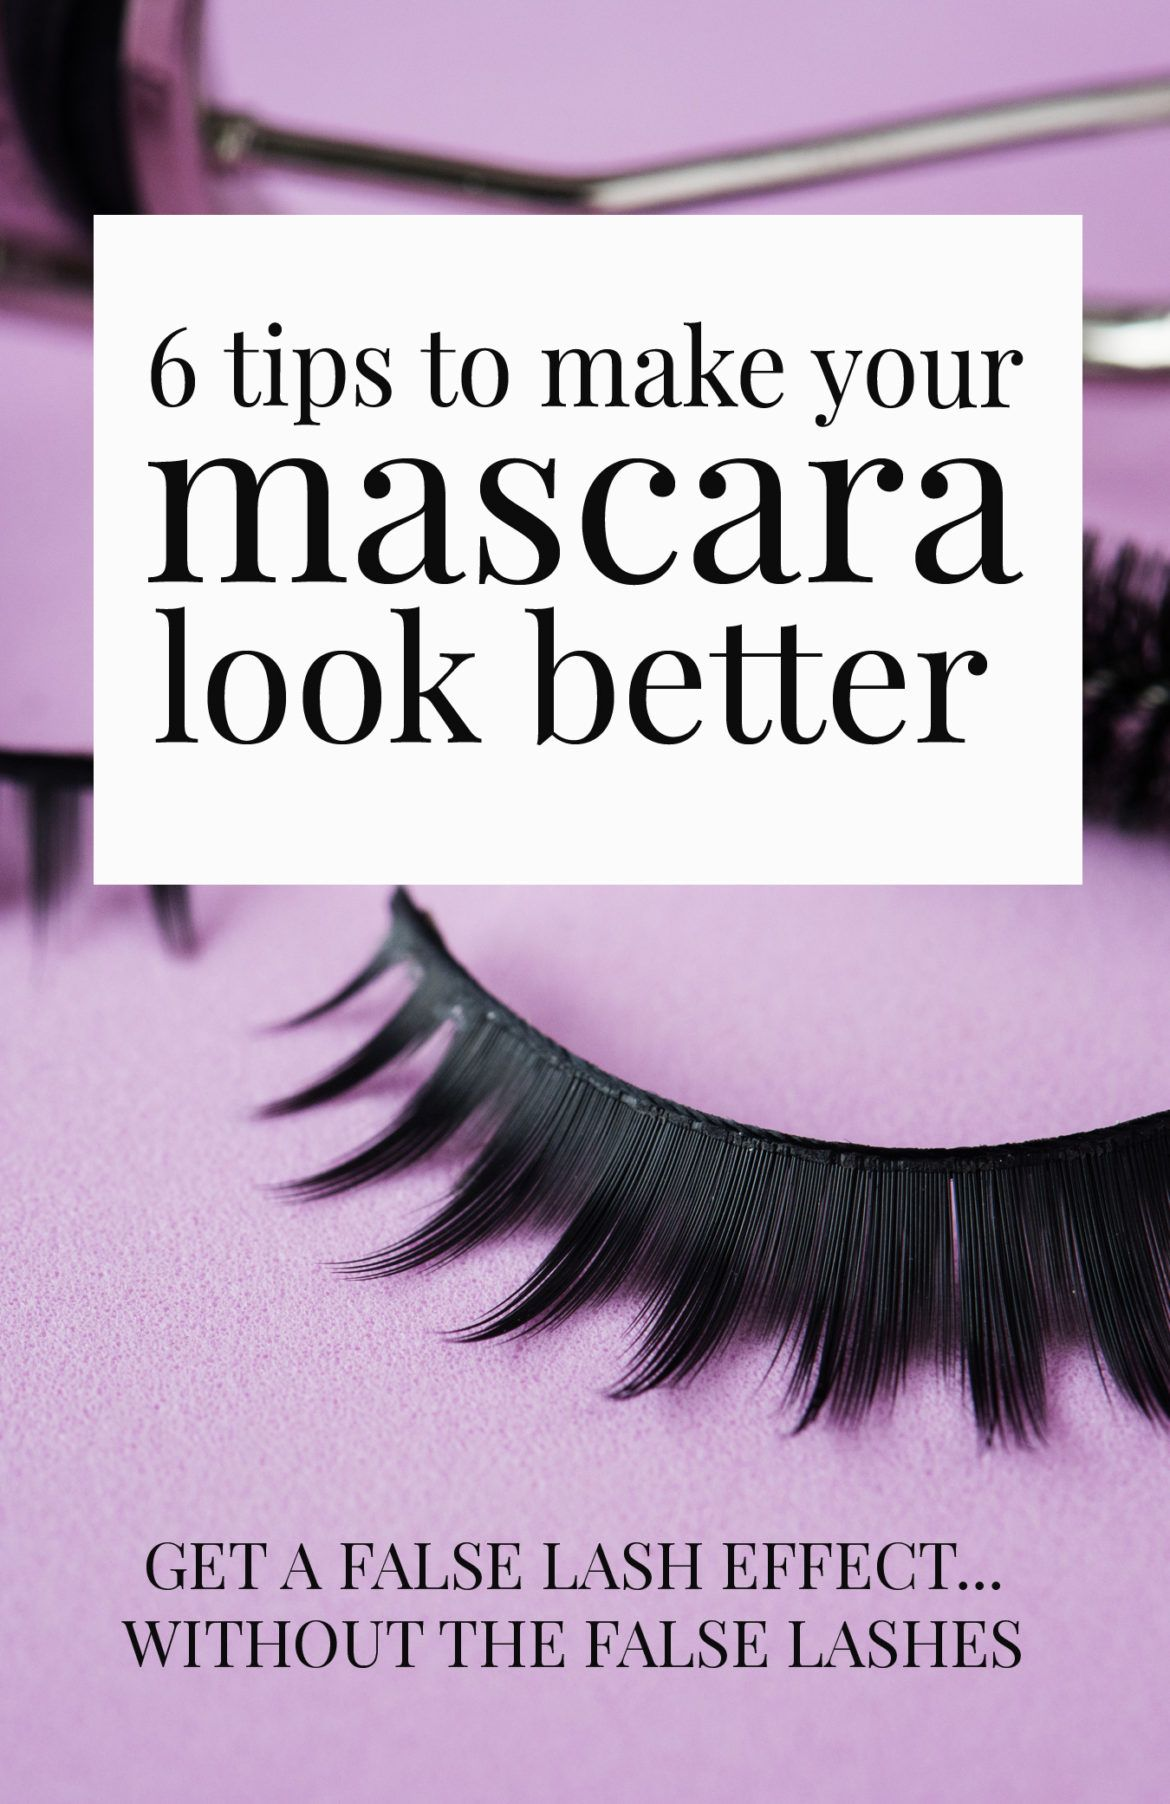 7f149852b2b Quick mascara tips   How to make your mascara look better, and get the false